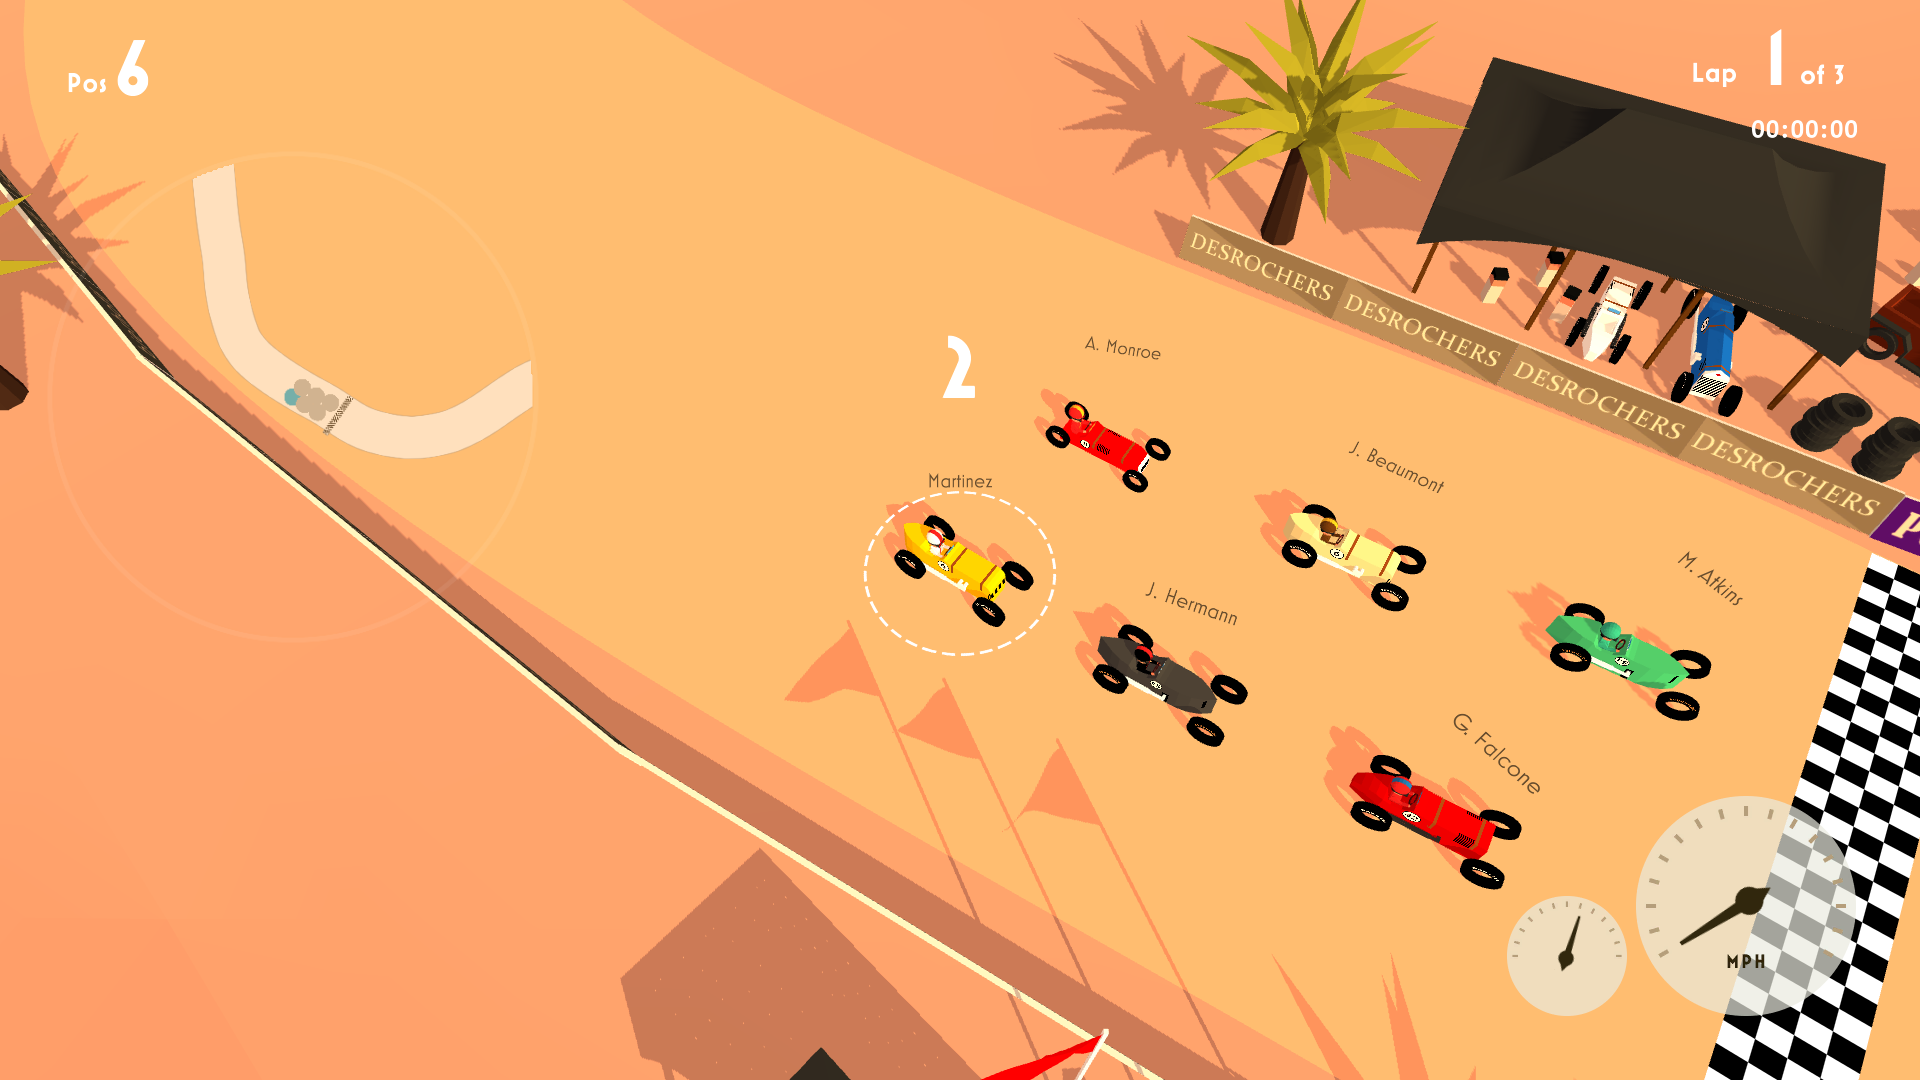 Start grid in Maghreb race